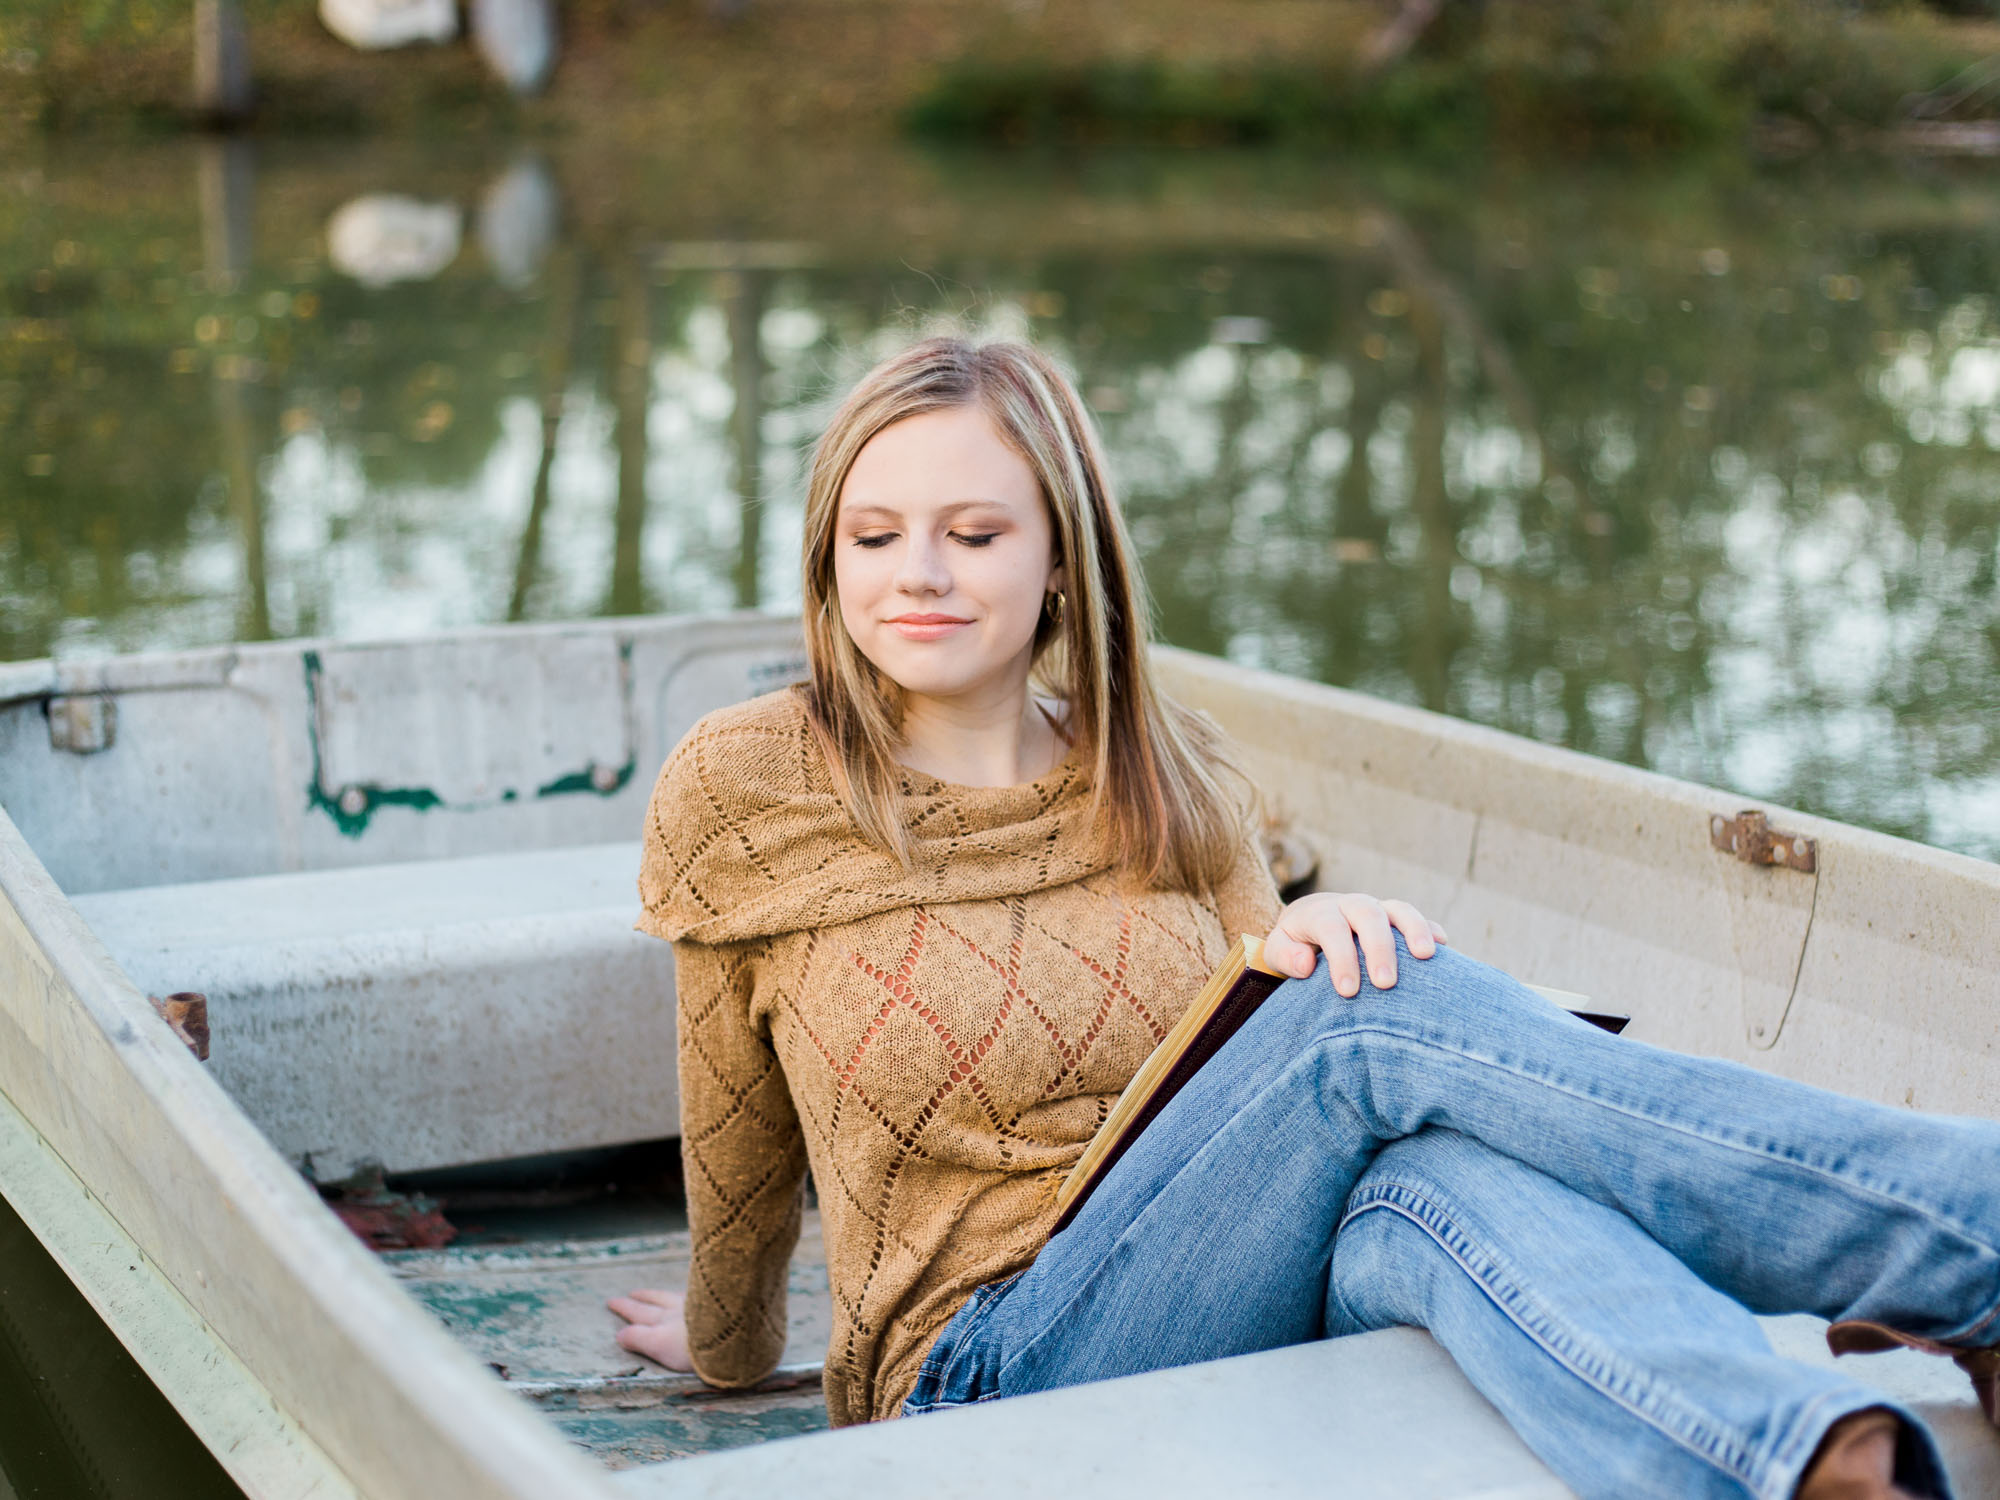 Fall Senior Photos in Wooster Ohio by Cleveland Wedding Photographer Matt Erickson Photography